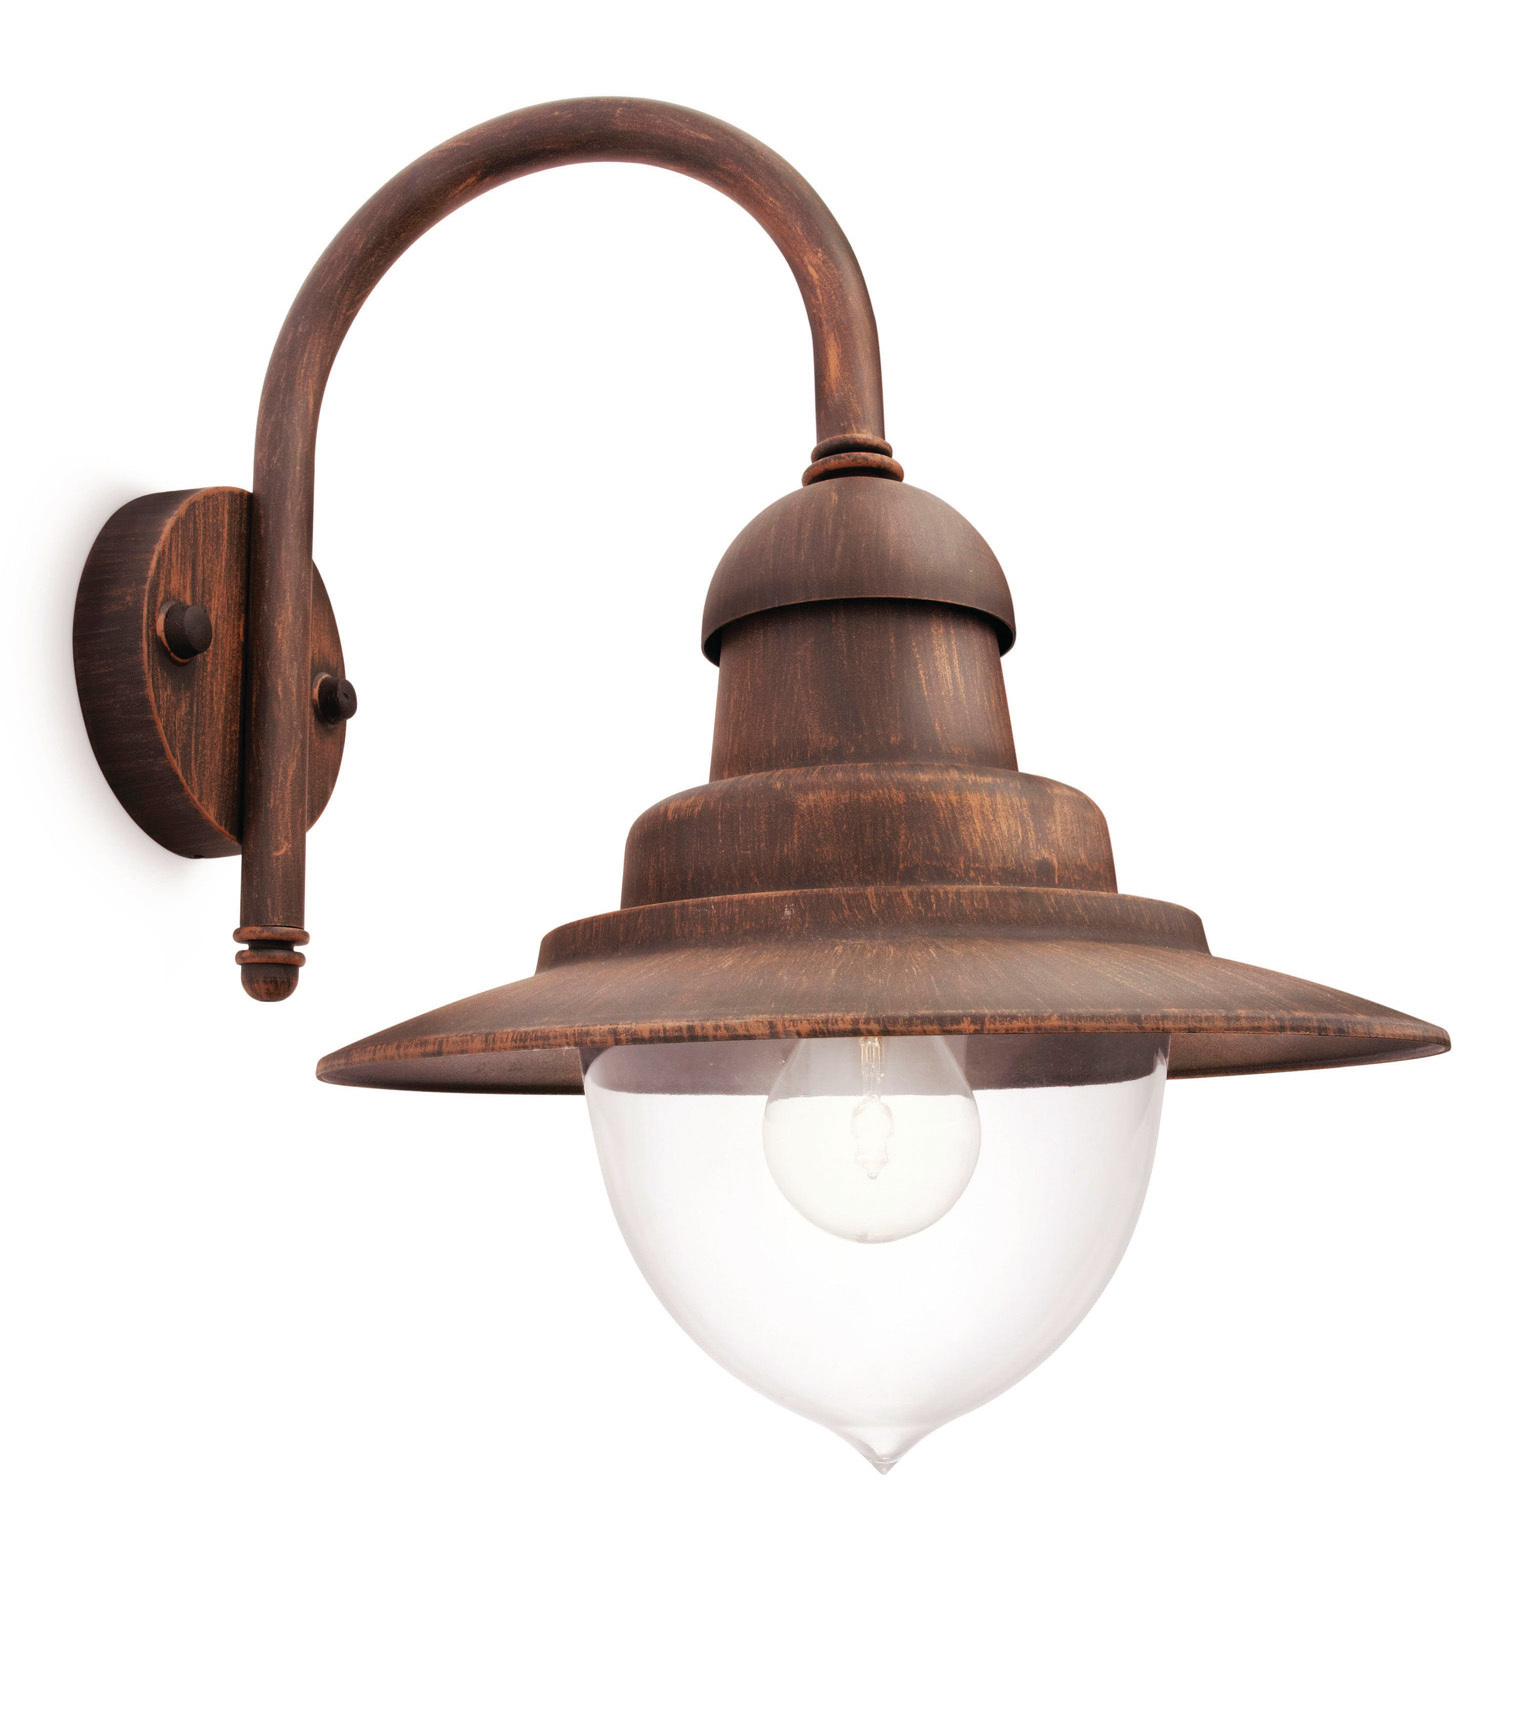 Philips 01652 06 16 aluminium mygarden 60w decorative outdoor wall light bronze ebay - Decorative garden lights ...